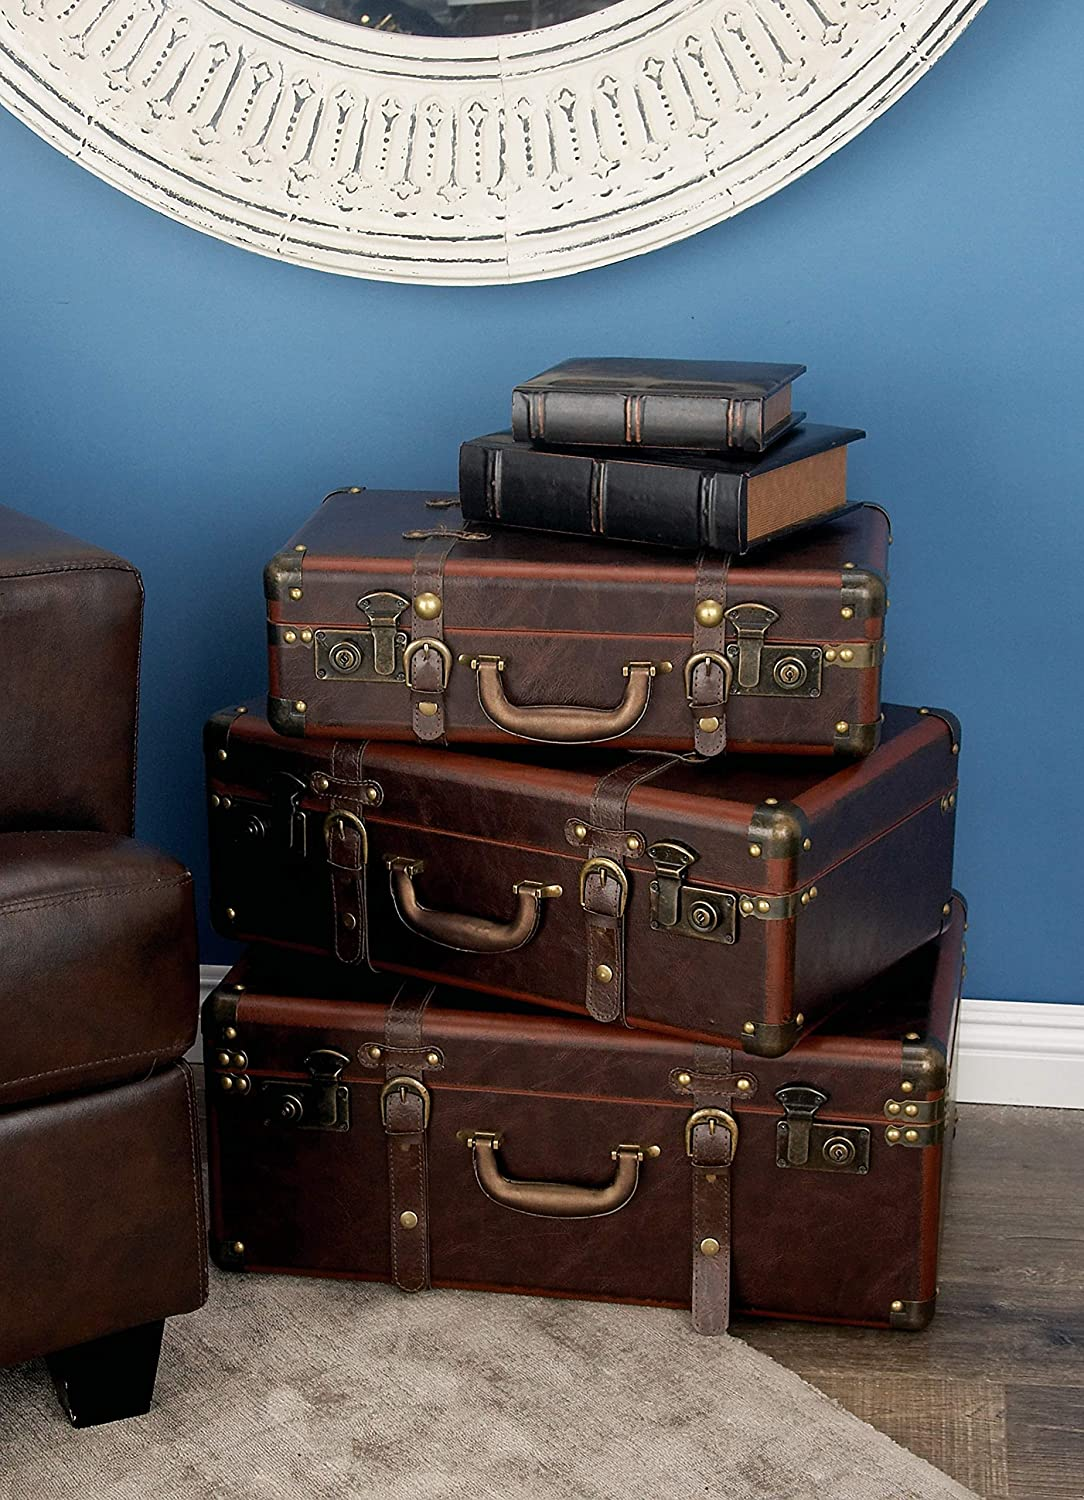 Amazon Com Deco 79 56976 Wood And Leather Vintage Suitcase Boxes Set Of 3 Brown Home Kitchen